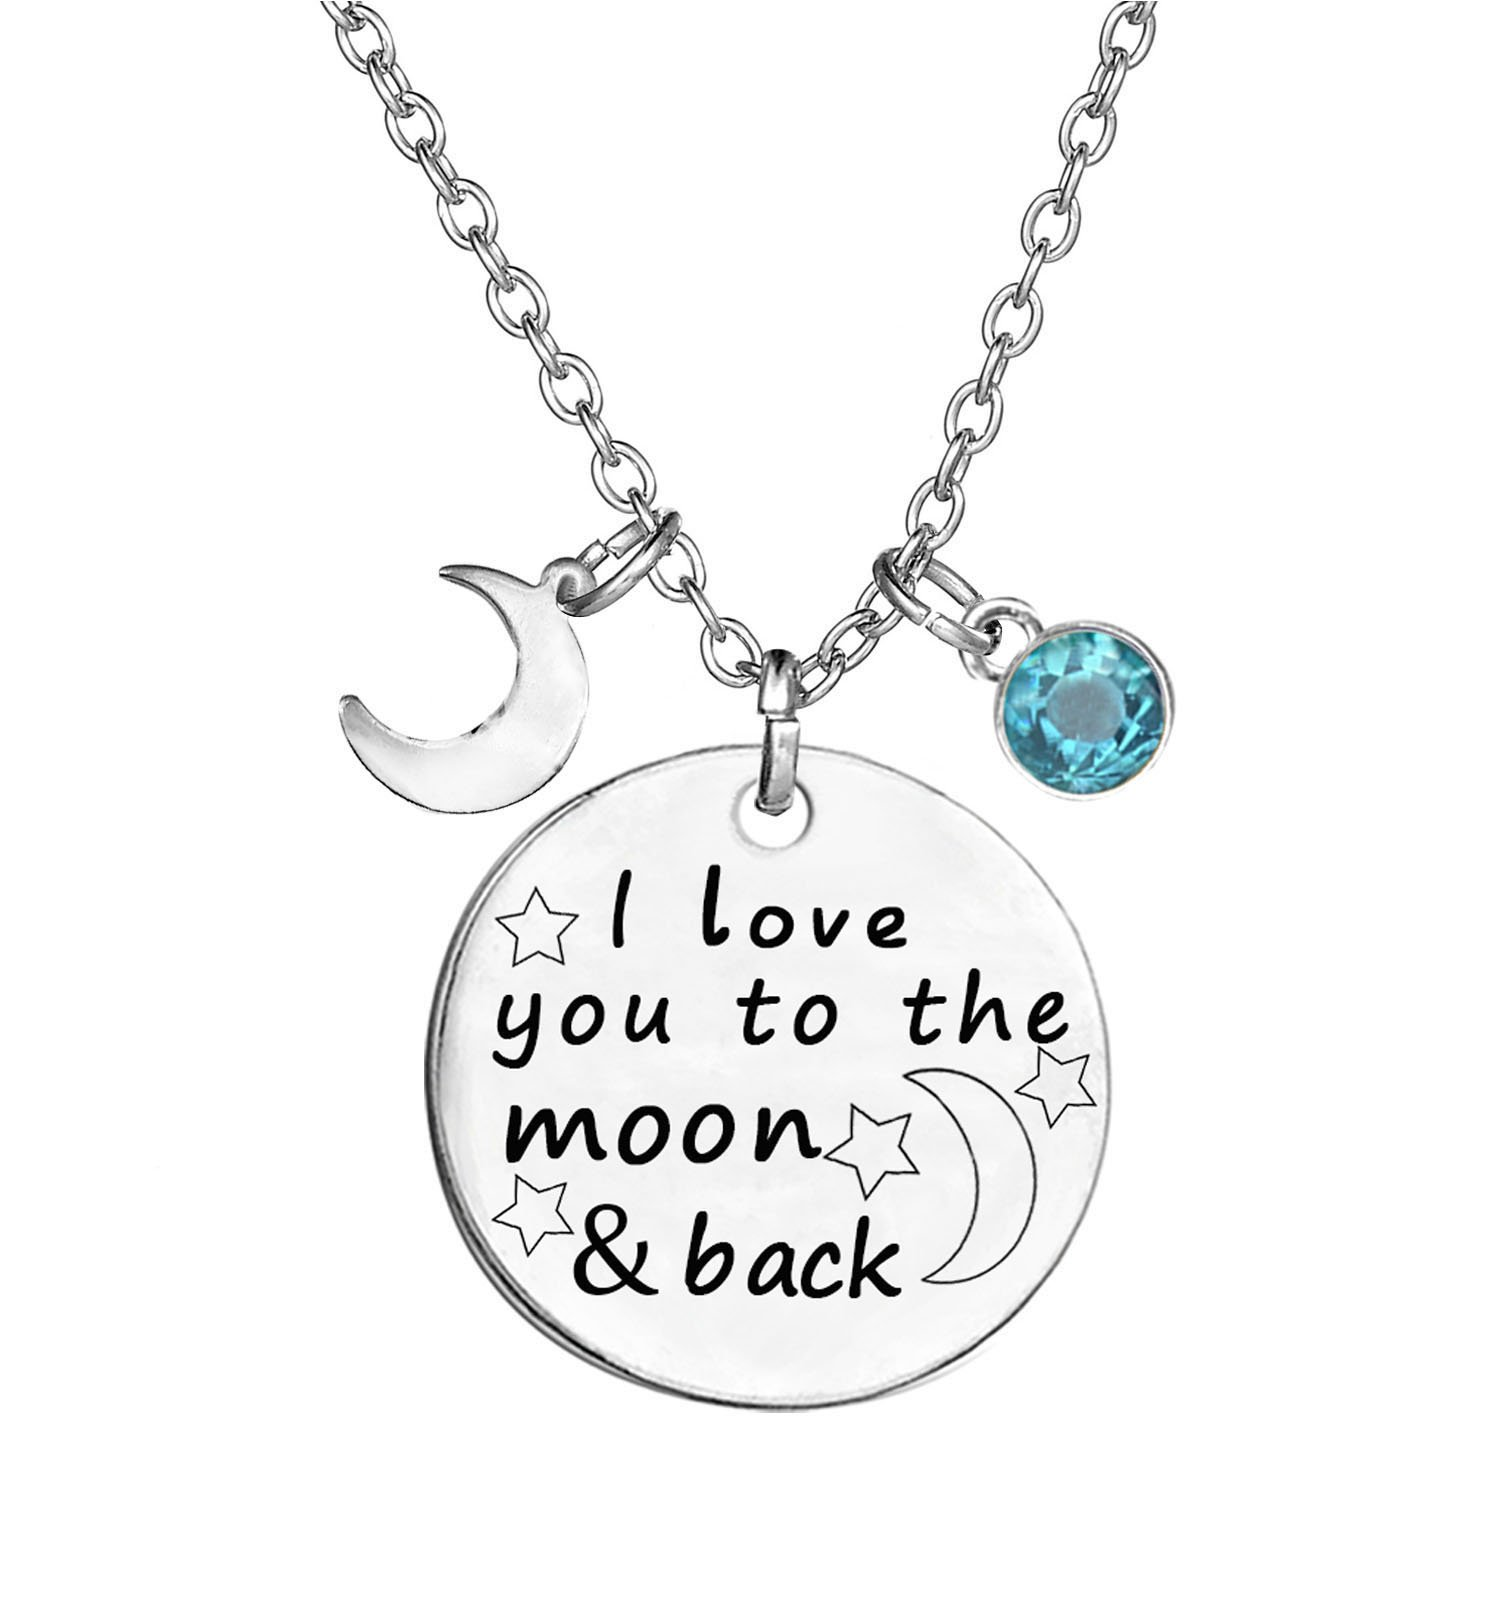 TISDA Birthstone Crystals Necklace,I Love You To The Moon And Back Jewelry Necklace (March)